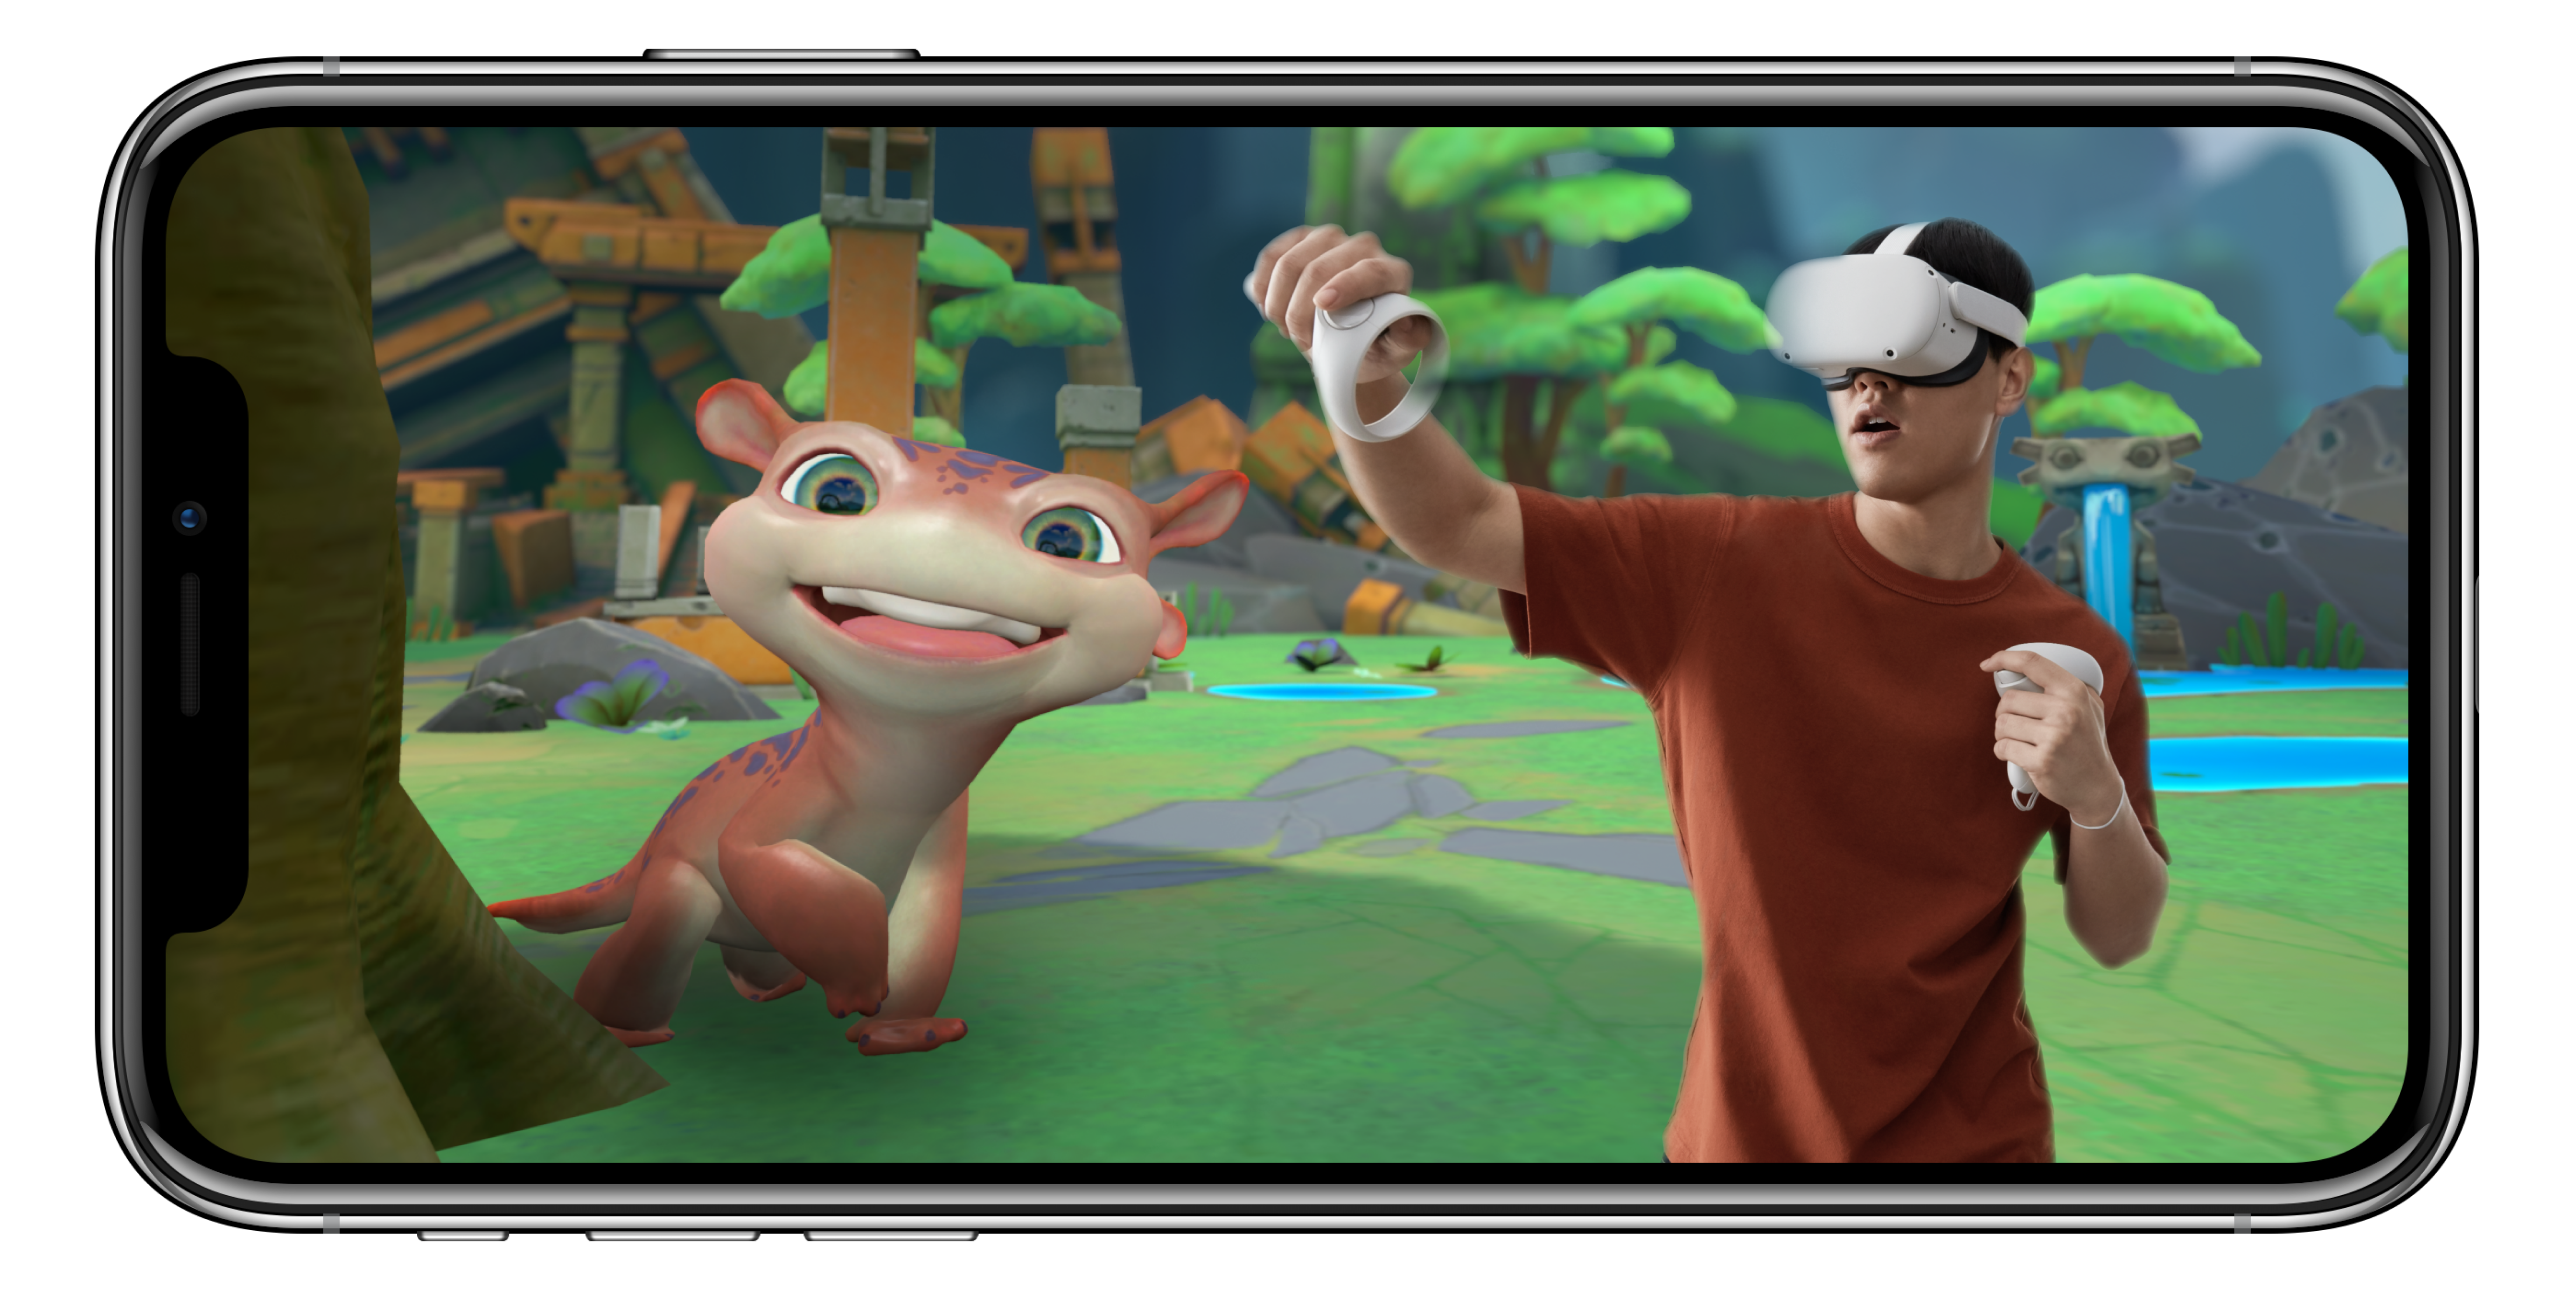 Oculus has another way to put yourself in the game.